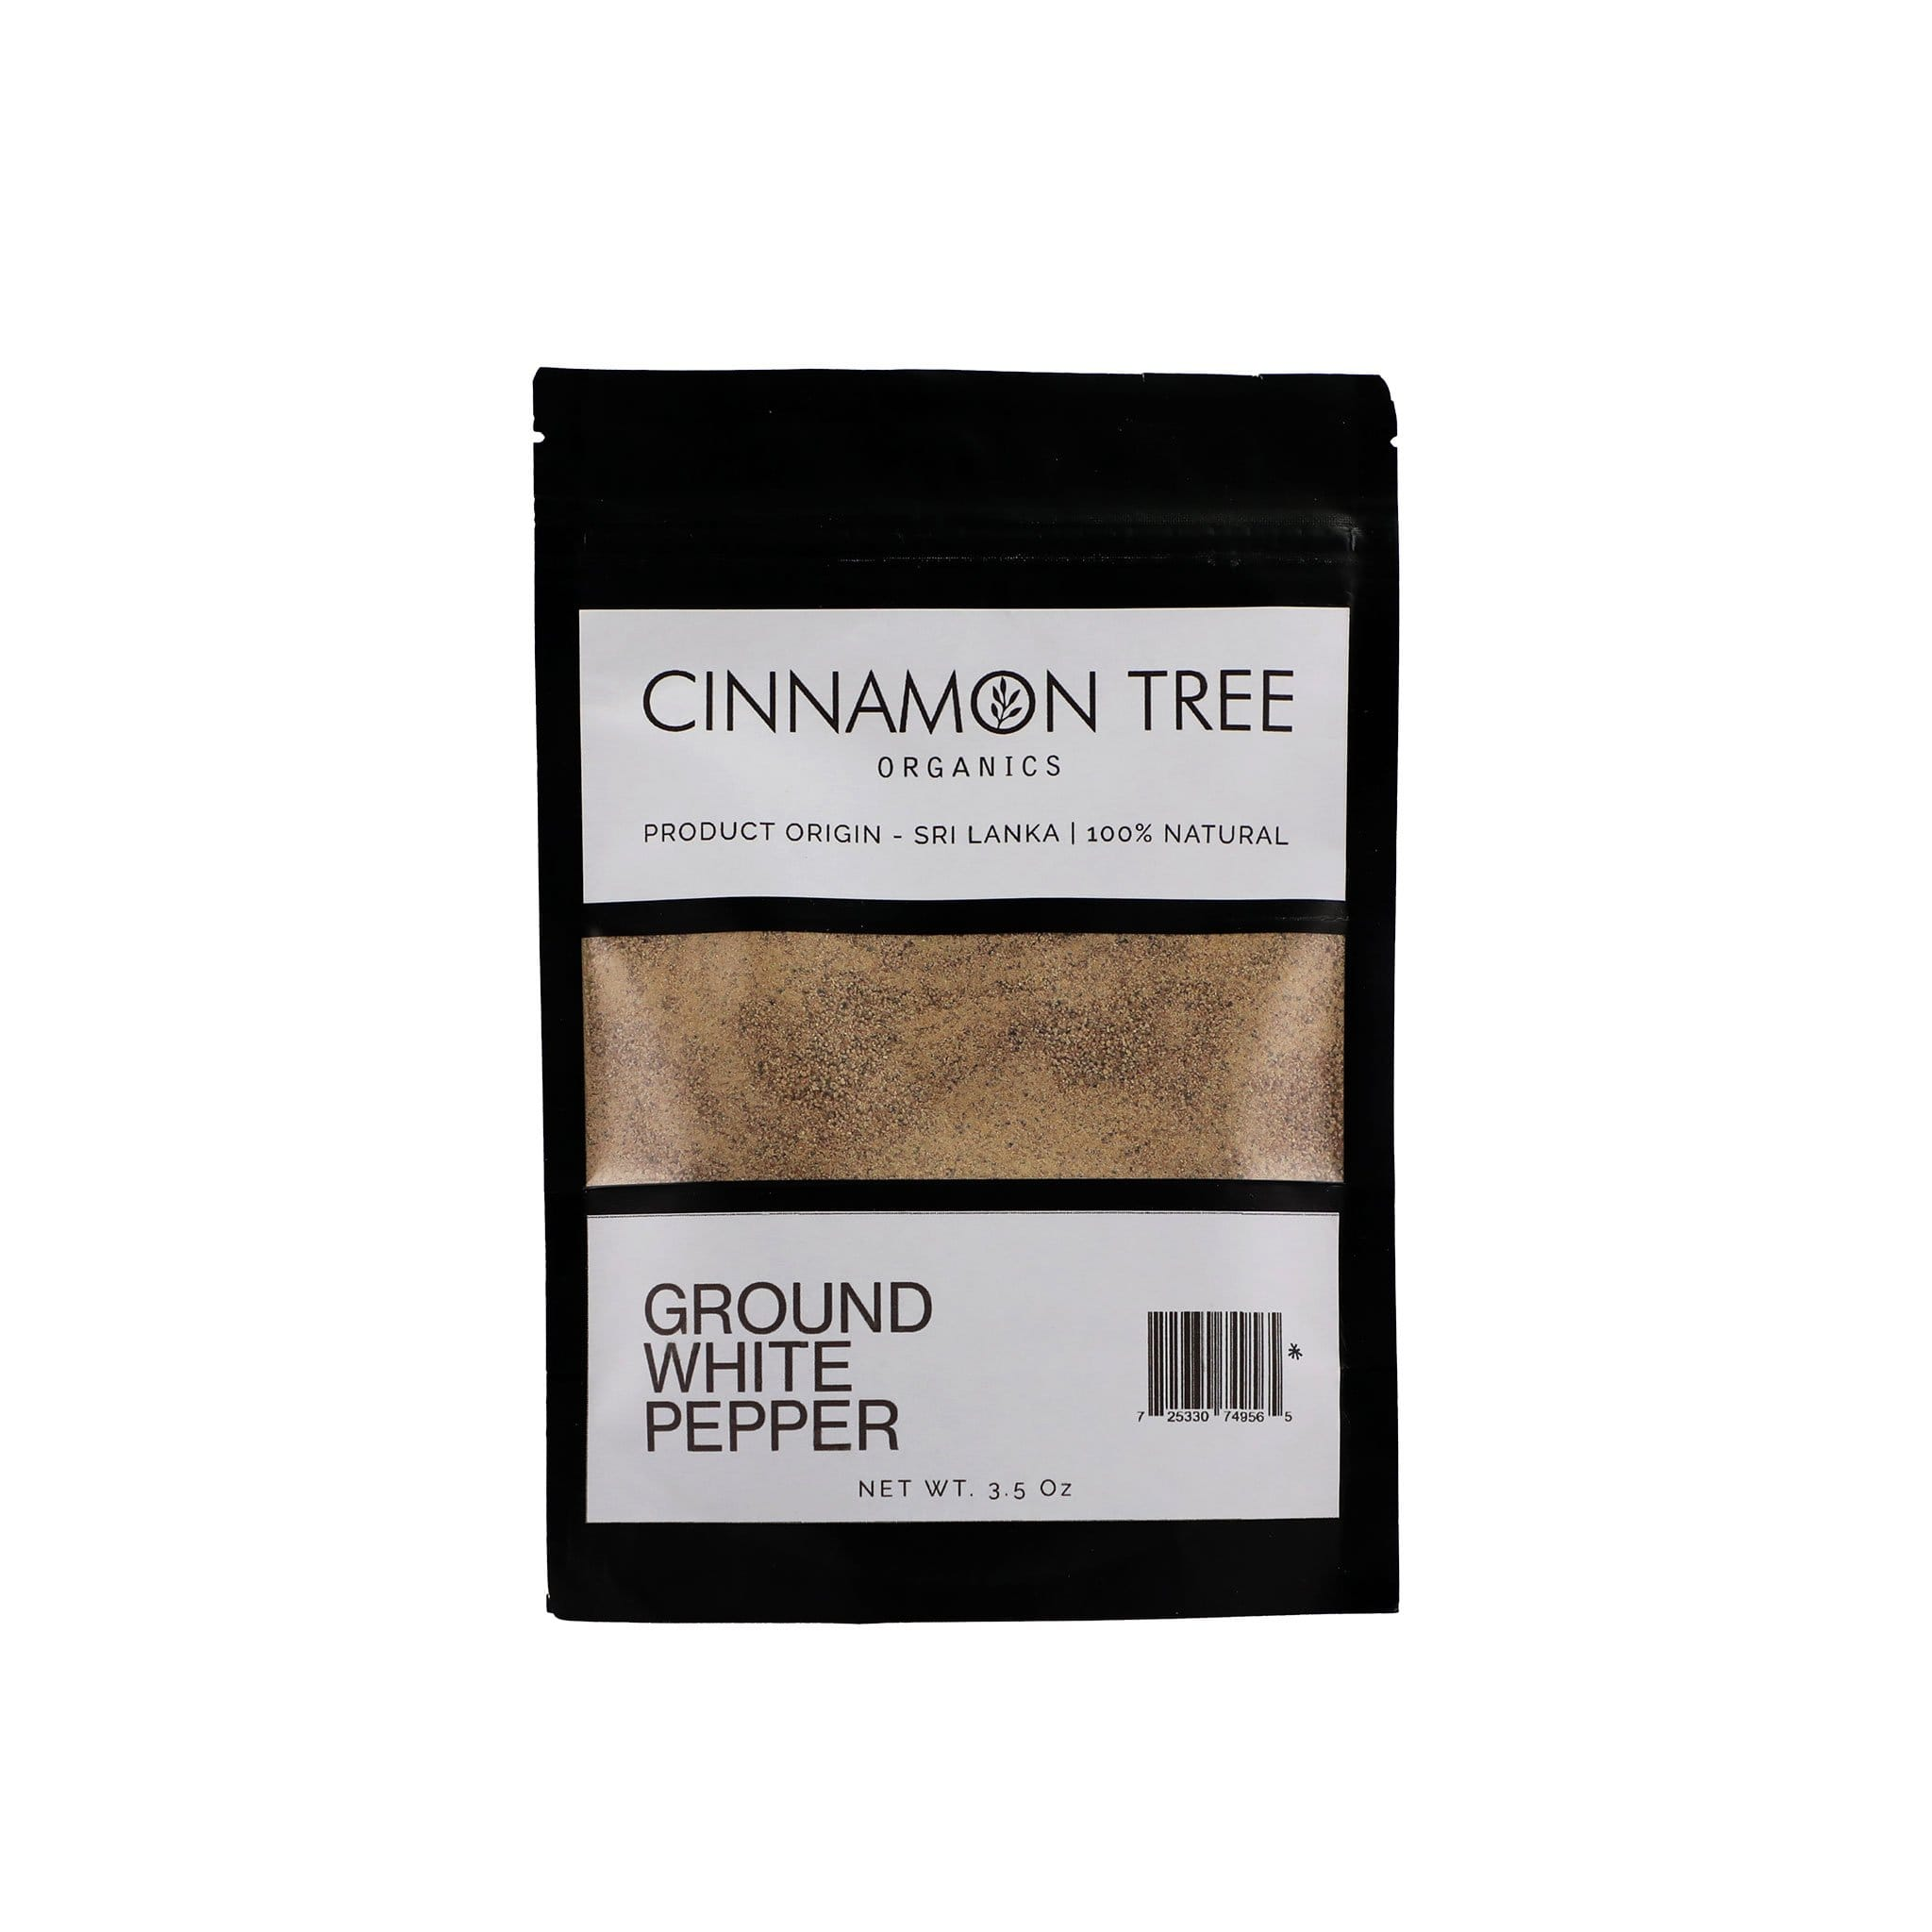 Cinnamon Tree Organics Certified-organic single origin ground white pepper 3.5Oz